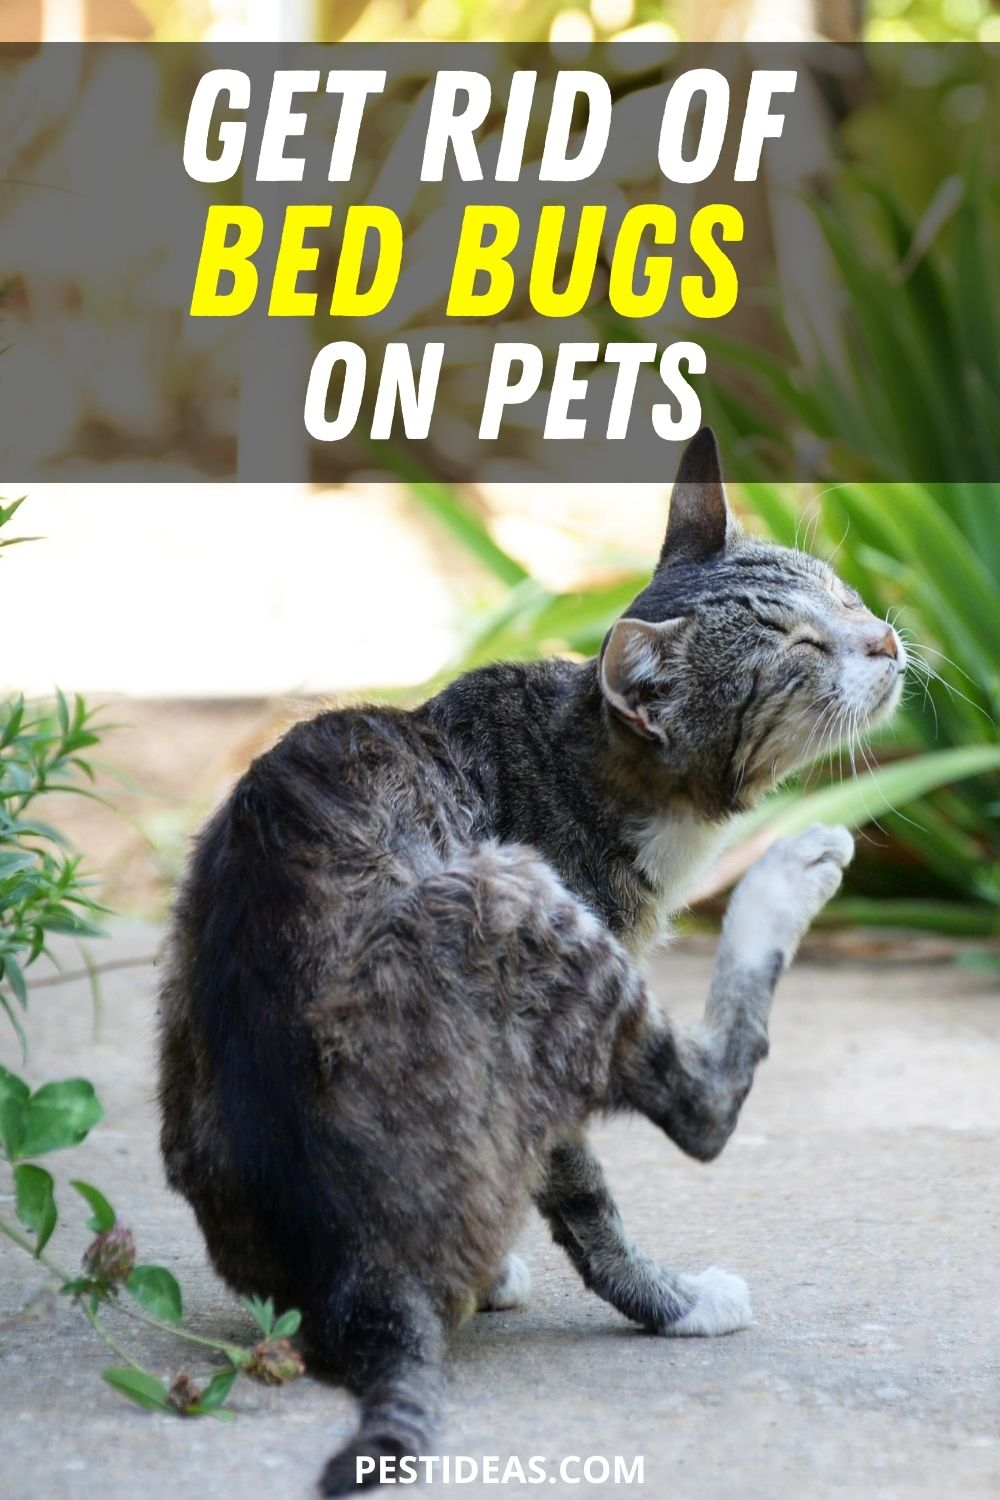 Get Rid of Bed Bugs on Pets